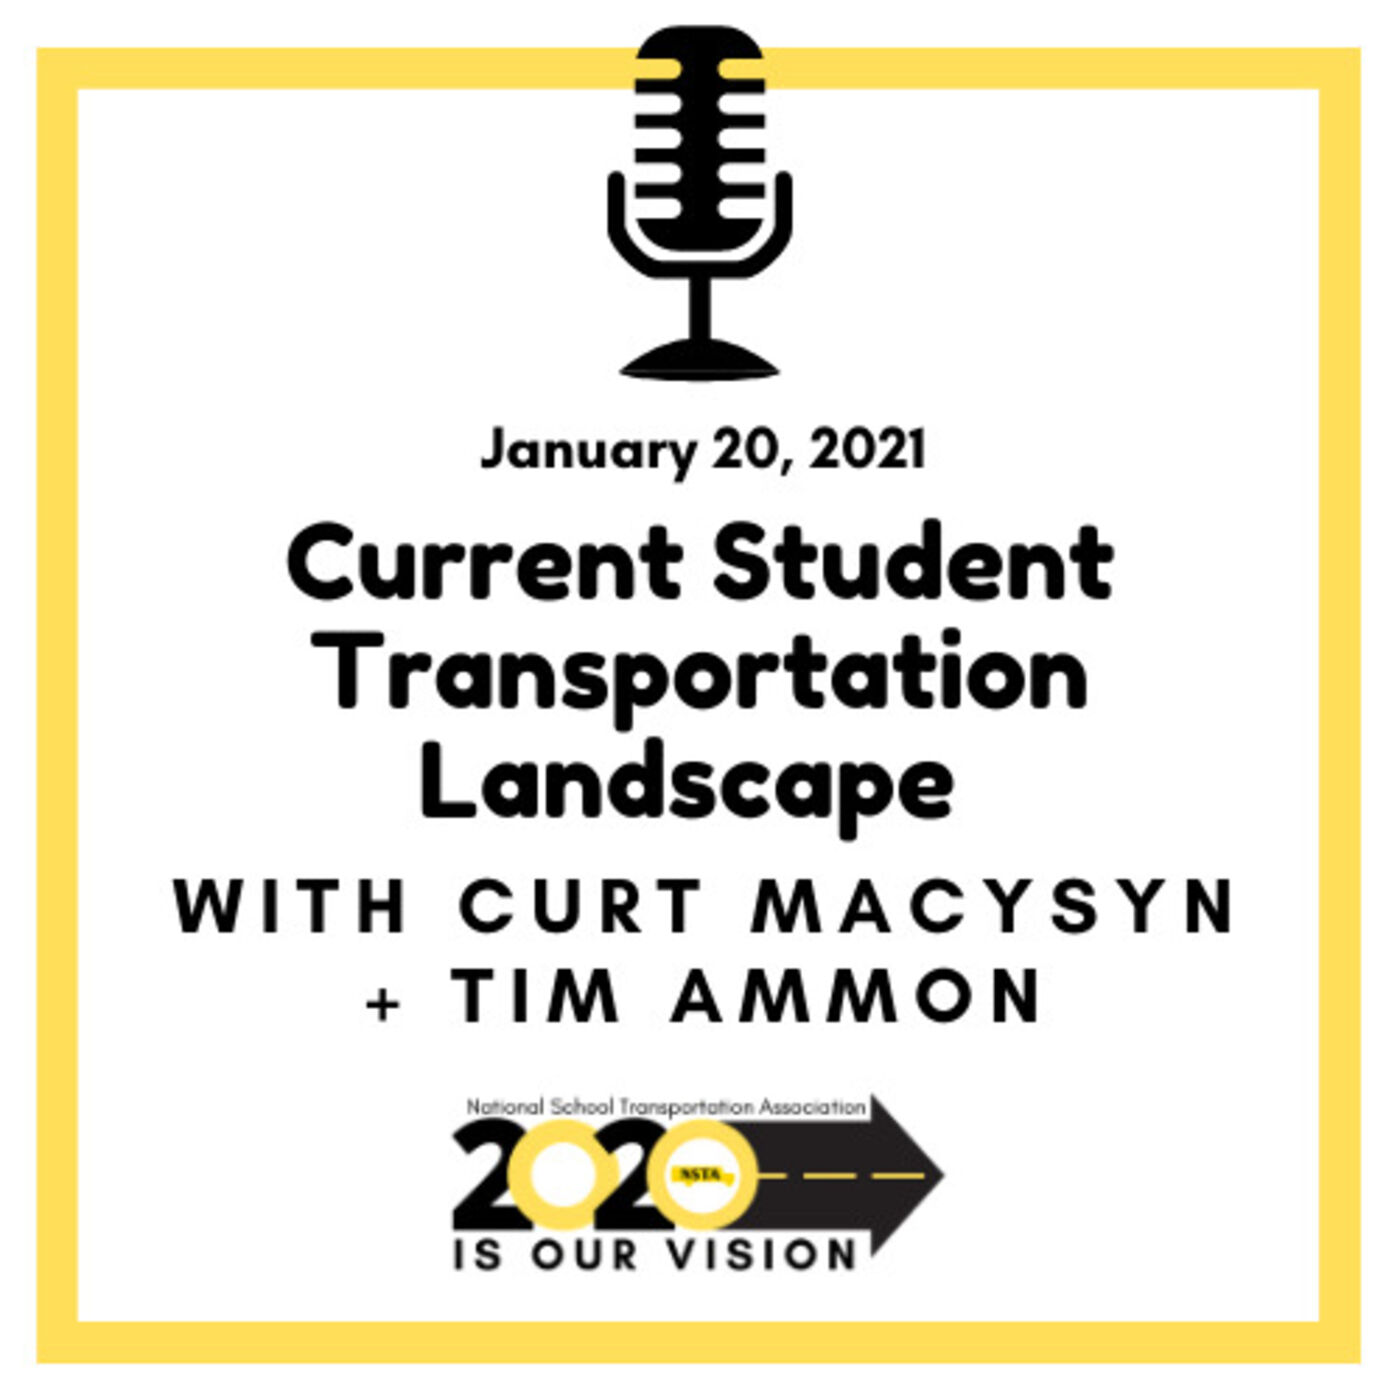 Current Student Transportation Landscape | Tim Ammon Co-Owner, Decisions Support Group